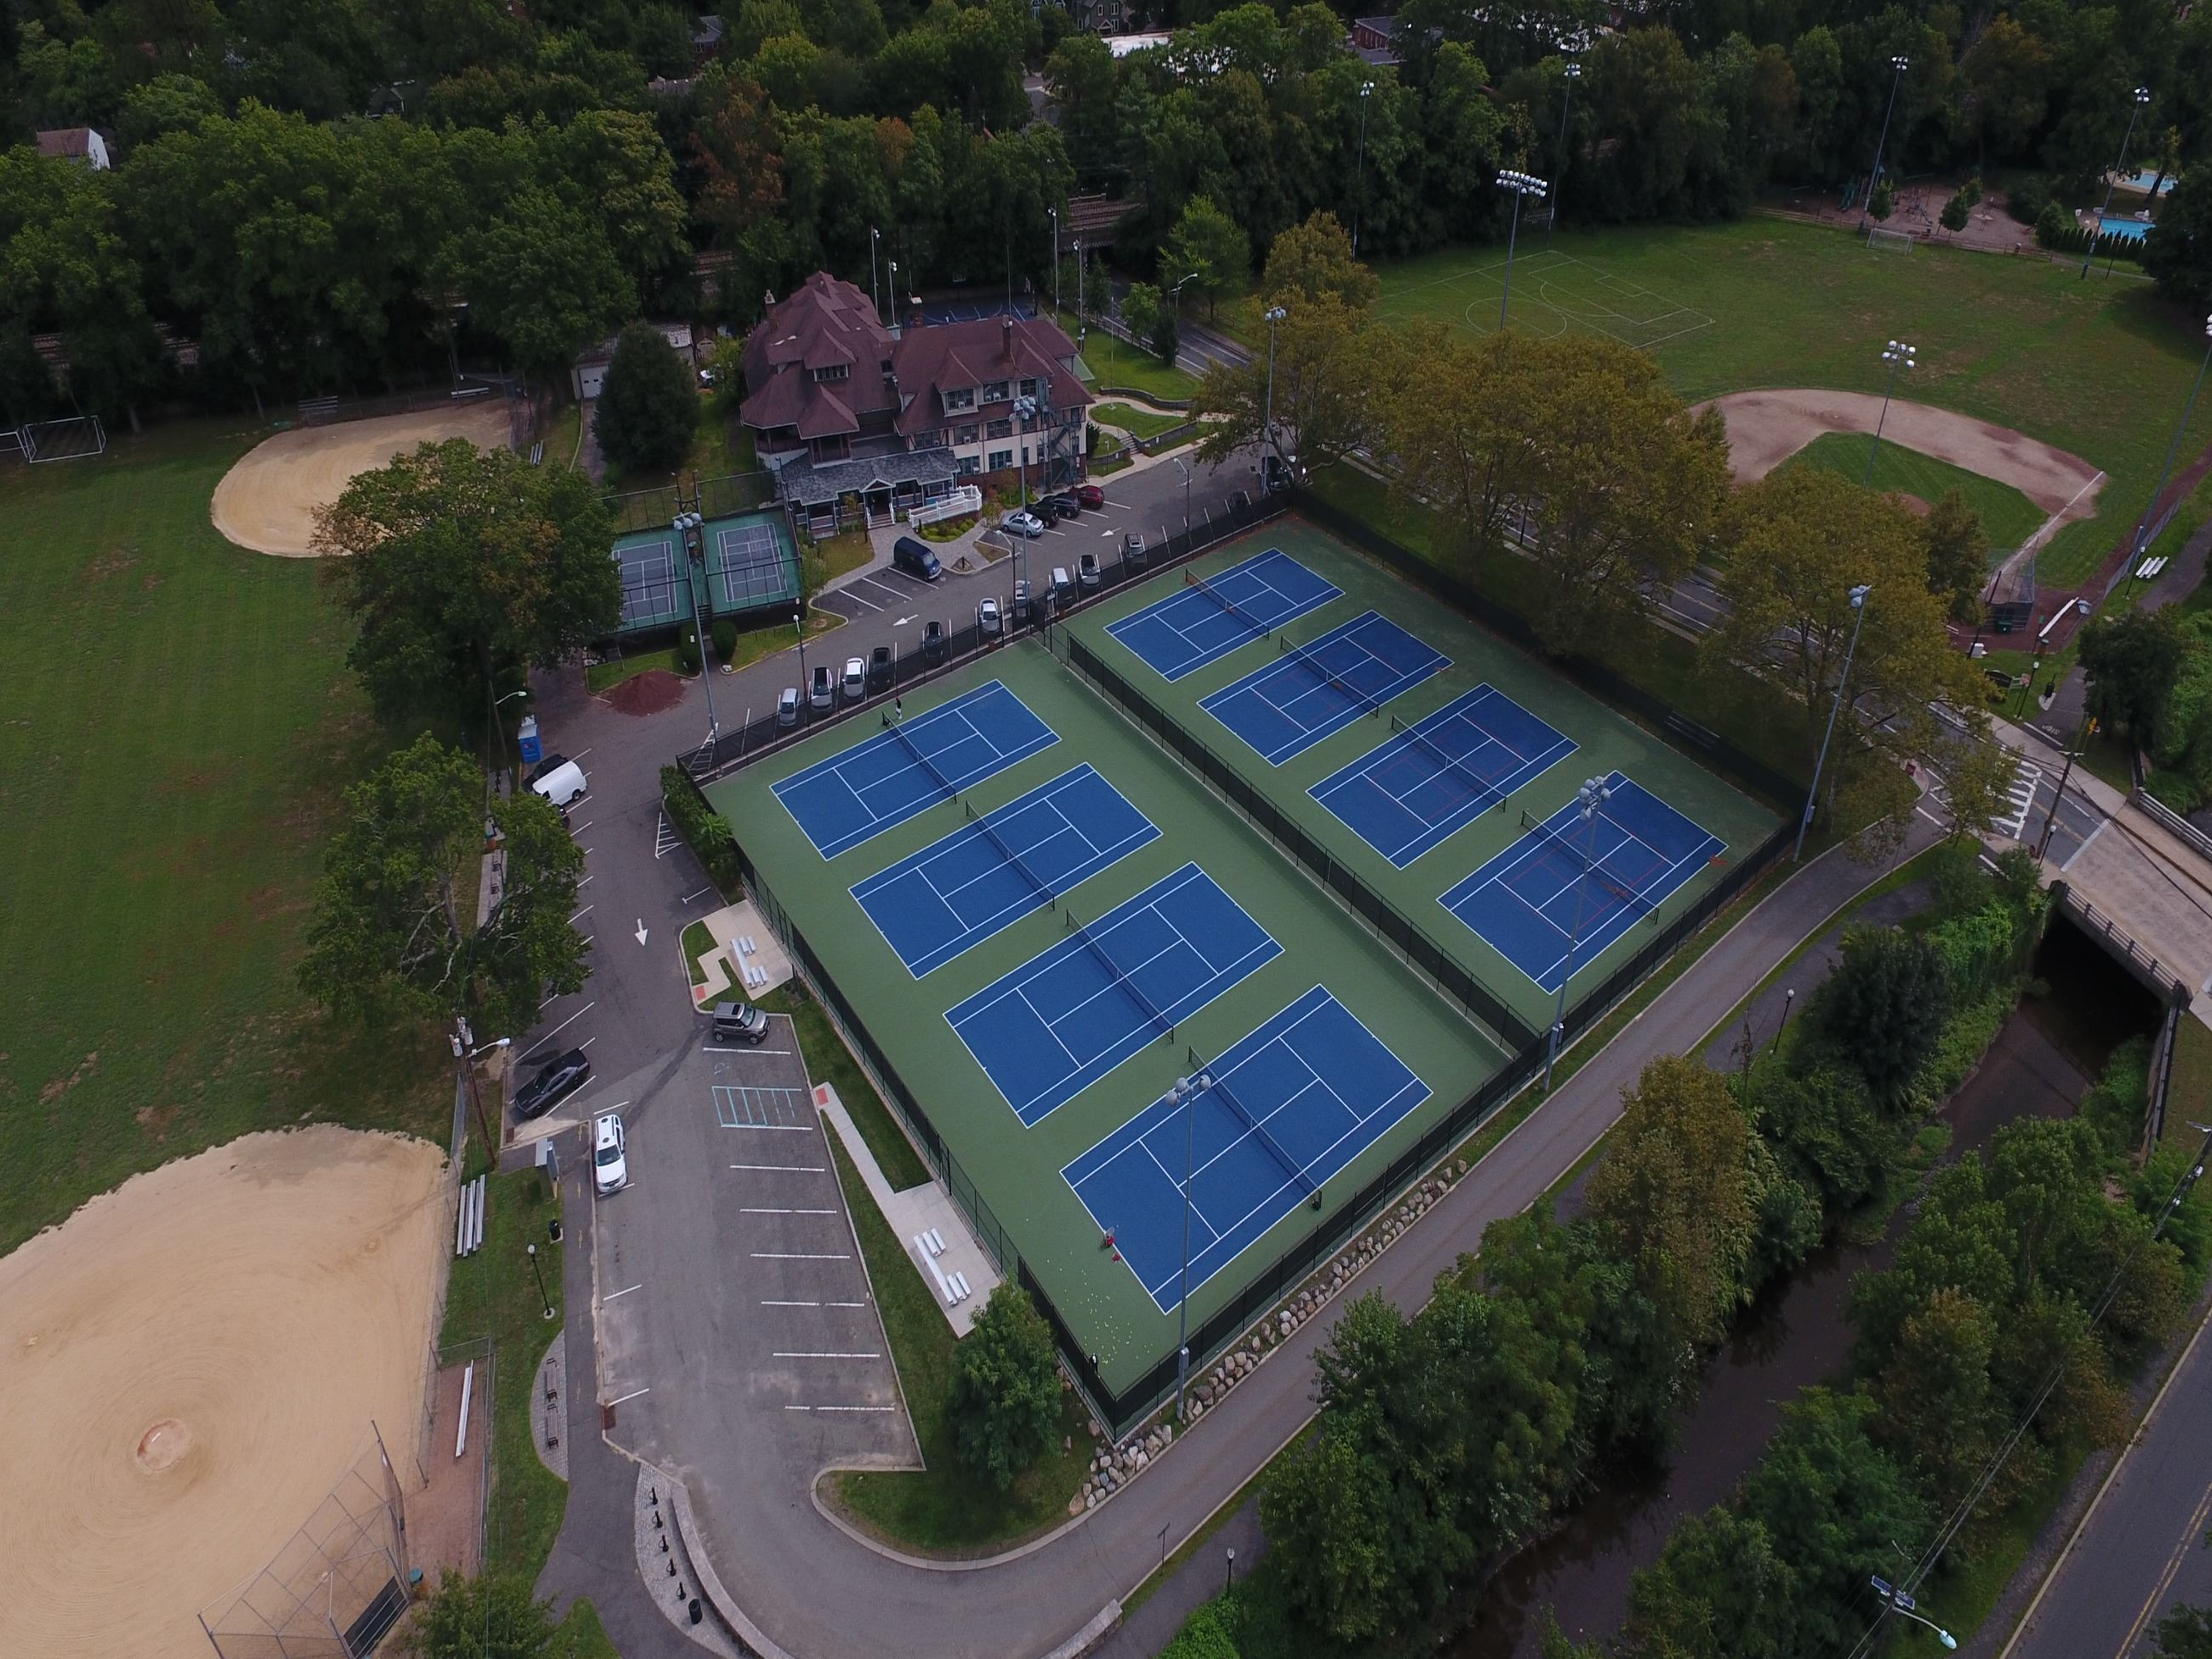 Kenny Graham Tennis Courts